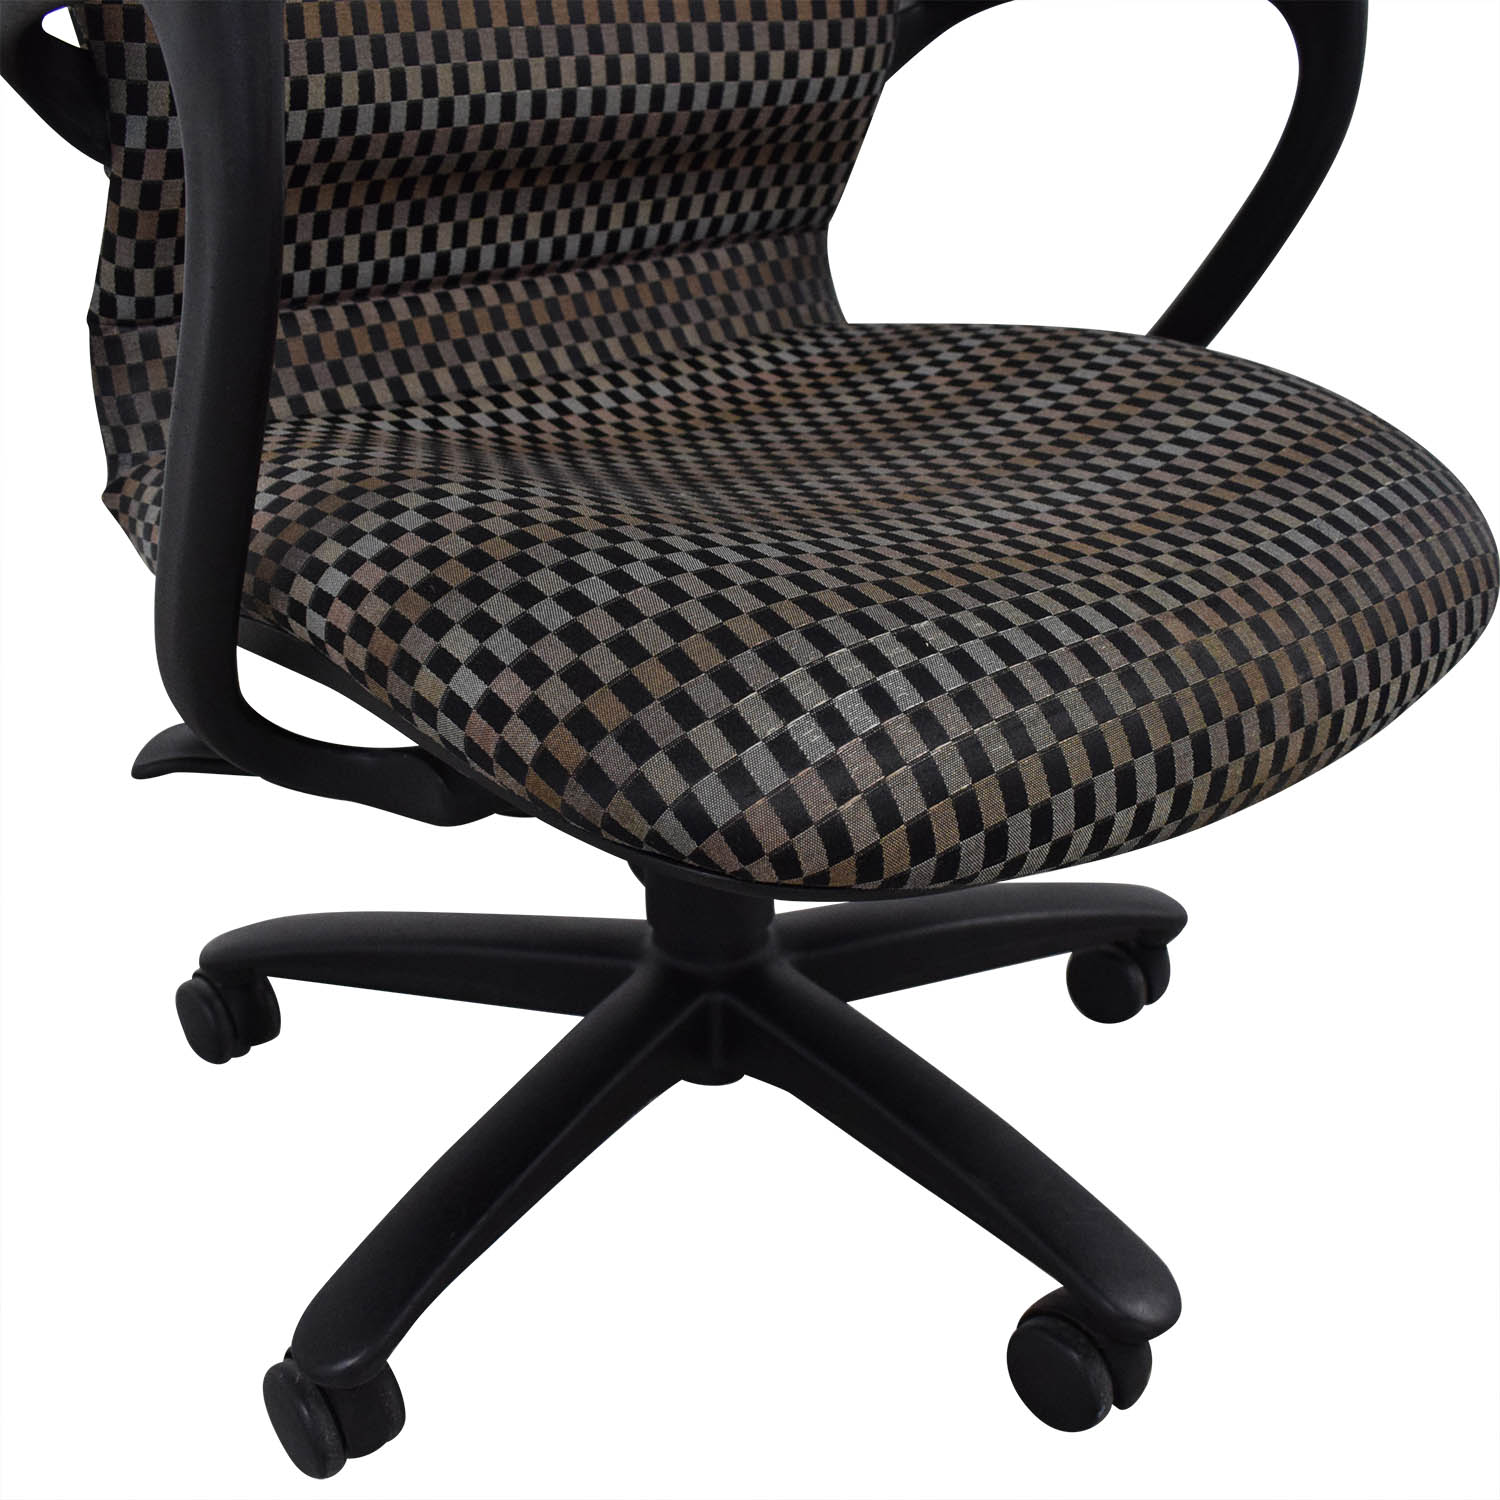 Awesome 62 Off Haworth Haworth Improv Office Desk Chair Chairs Caraccident5 Cool Chair Designs And Ideas Caraccident5Info